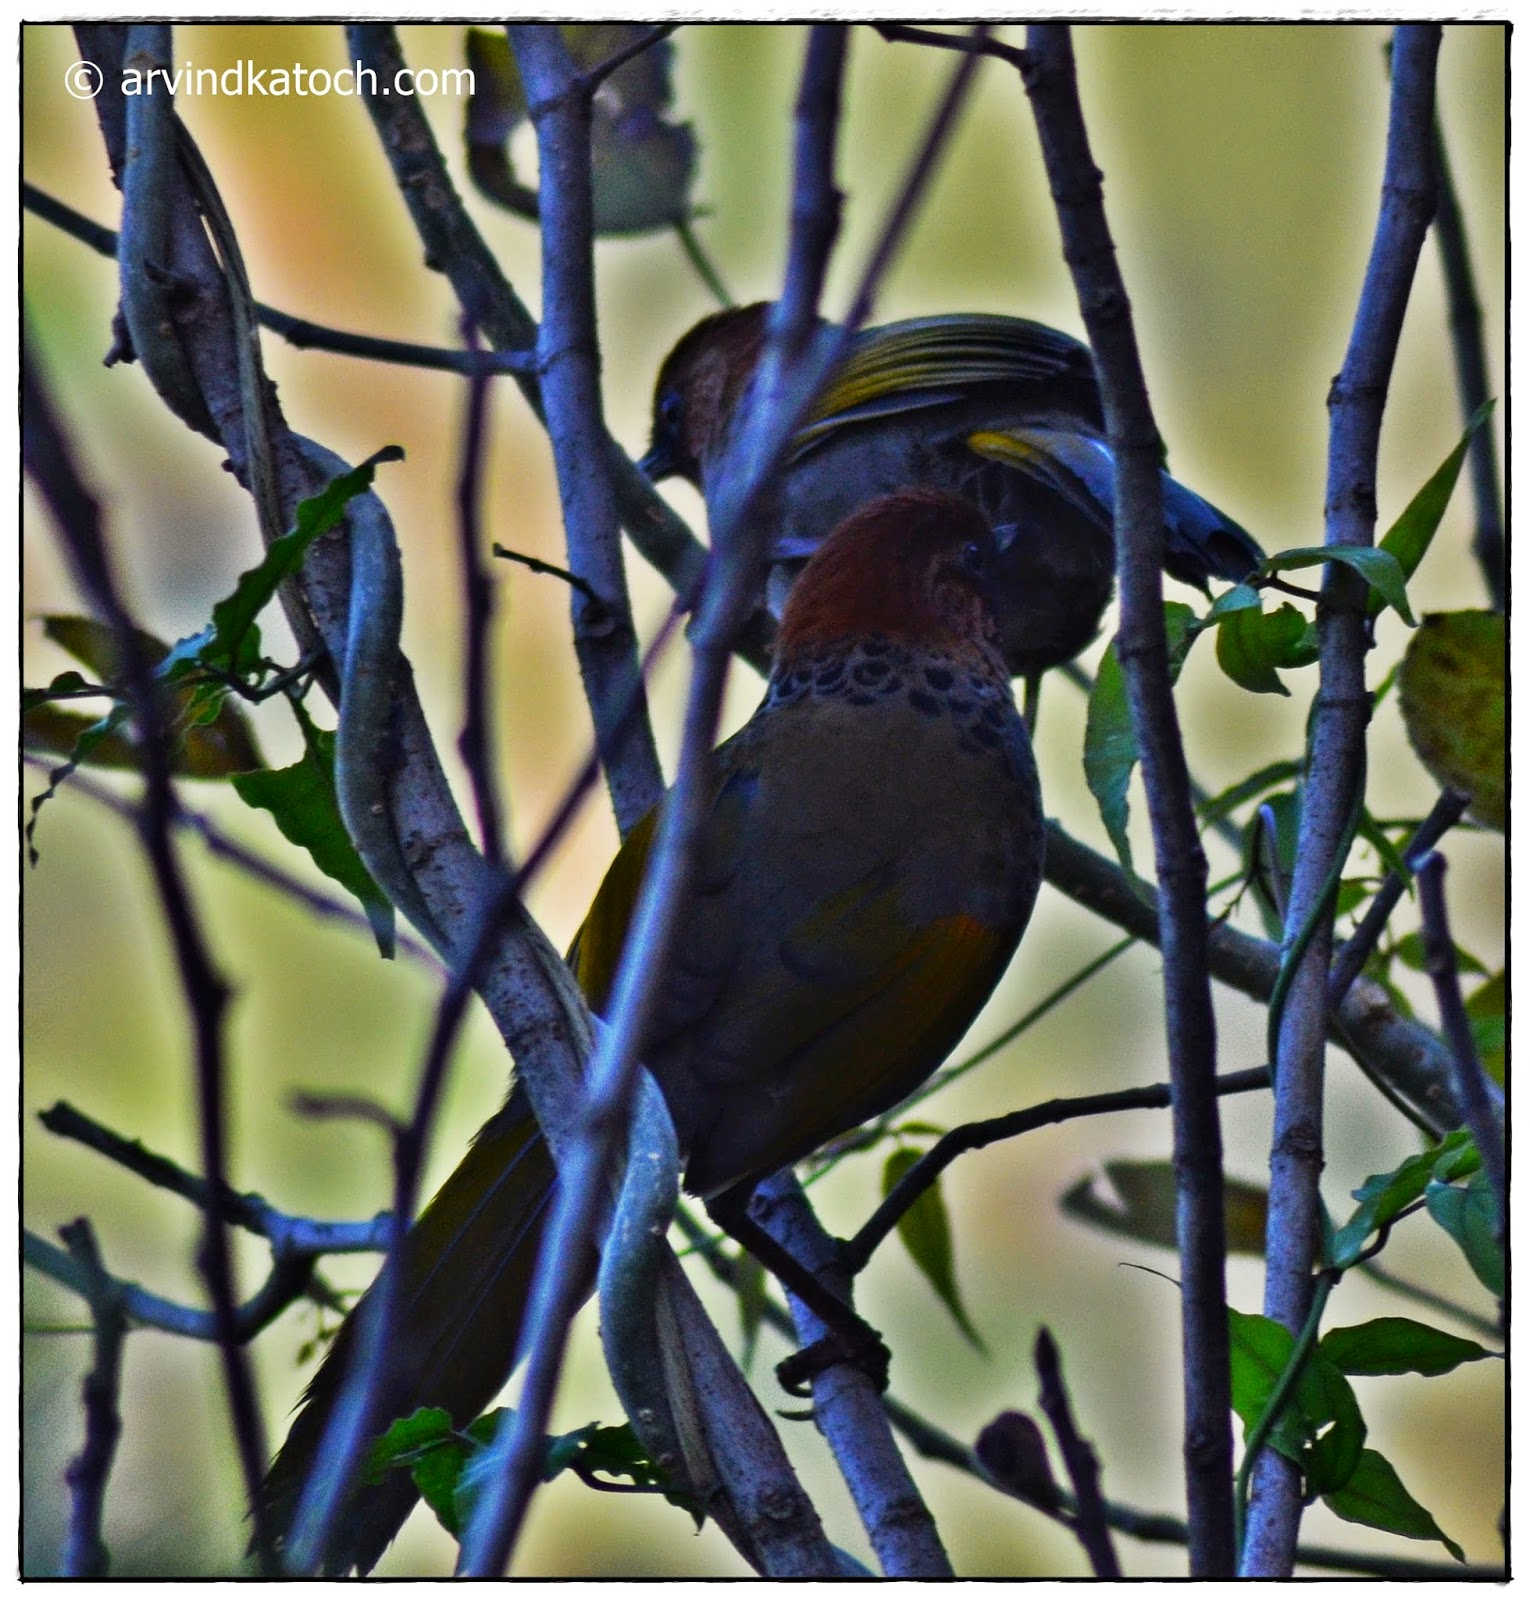 Back,  Chestnut-crowned Laughingthrush, Laughingthrush,